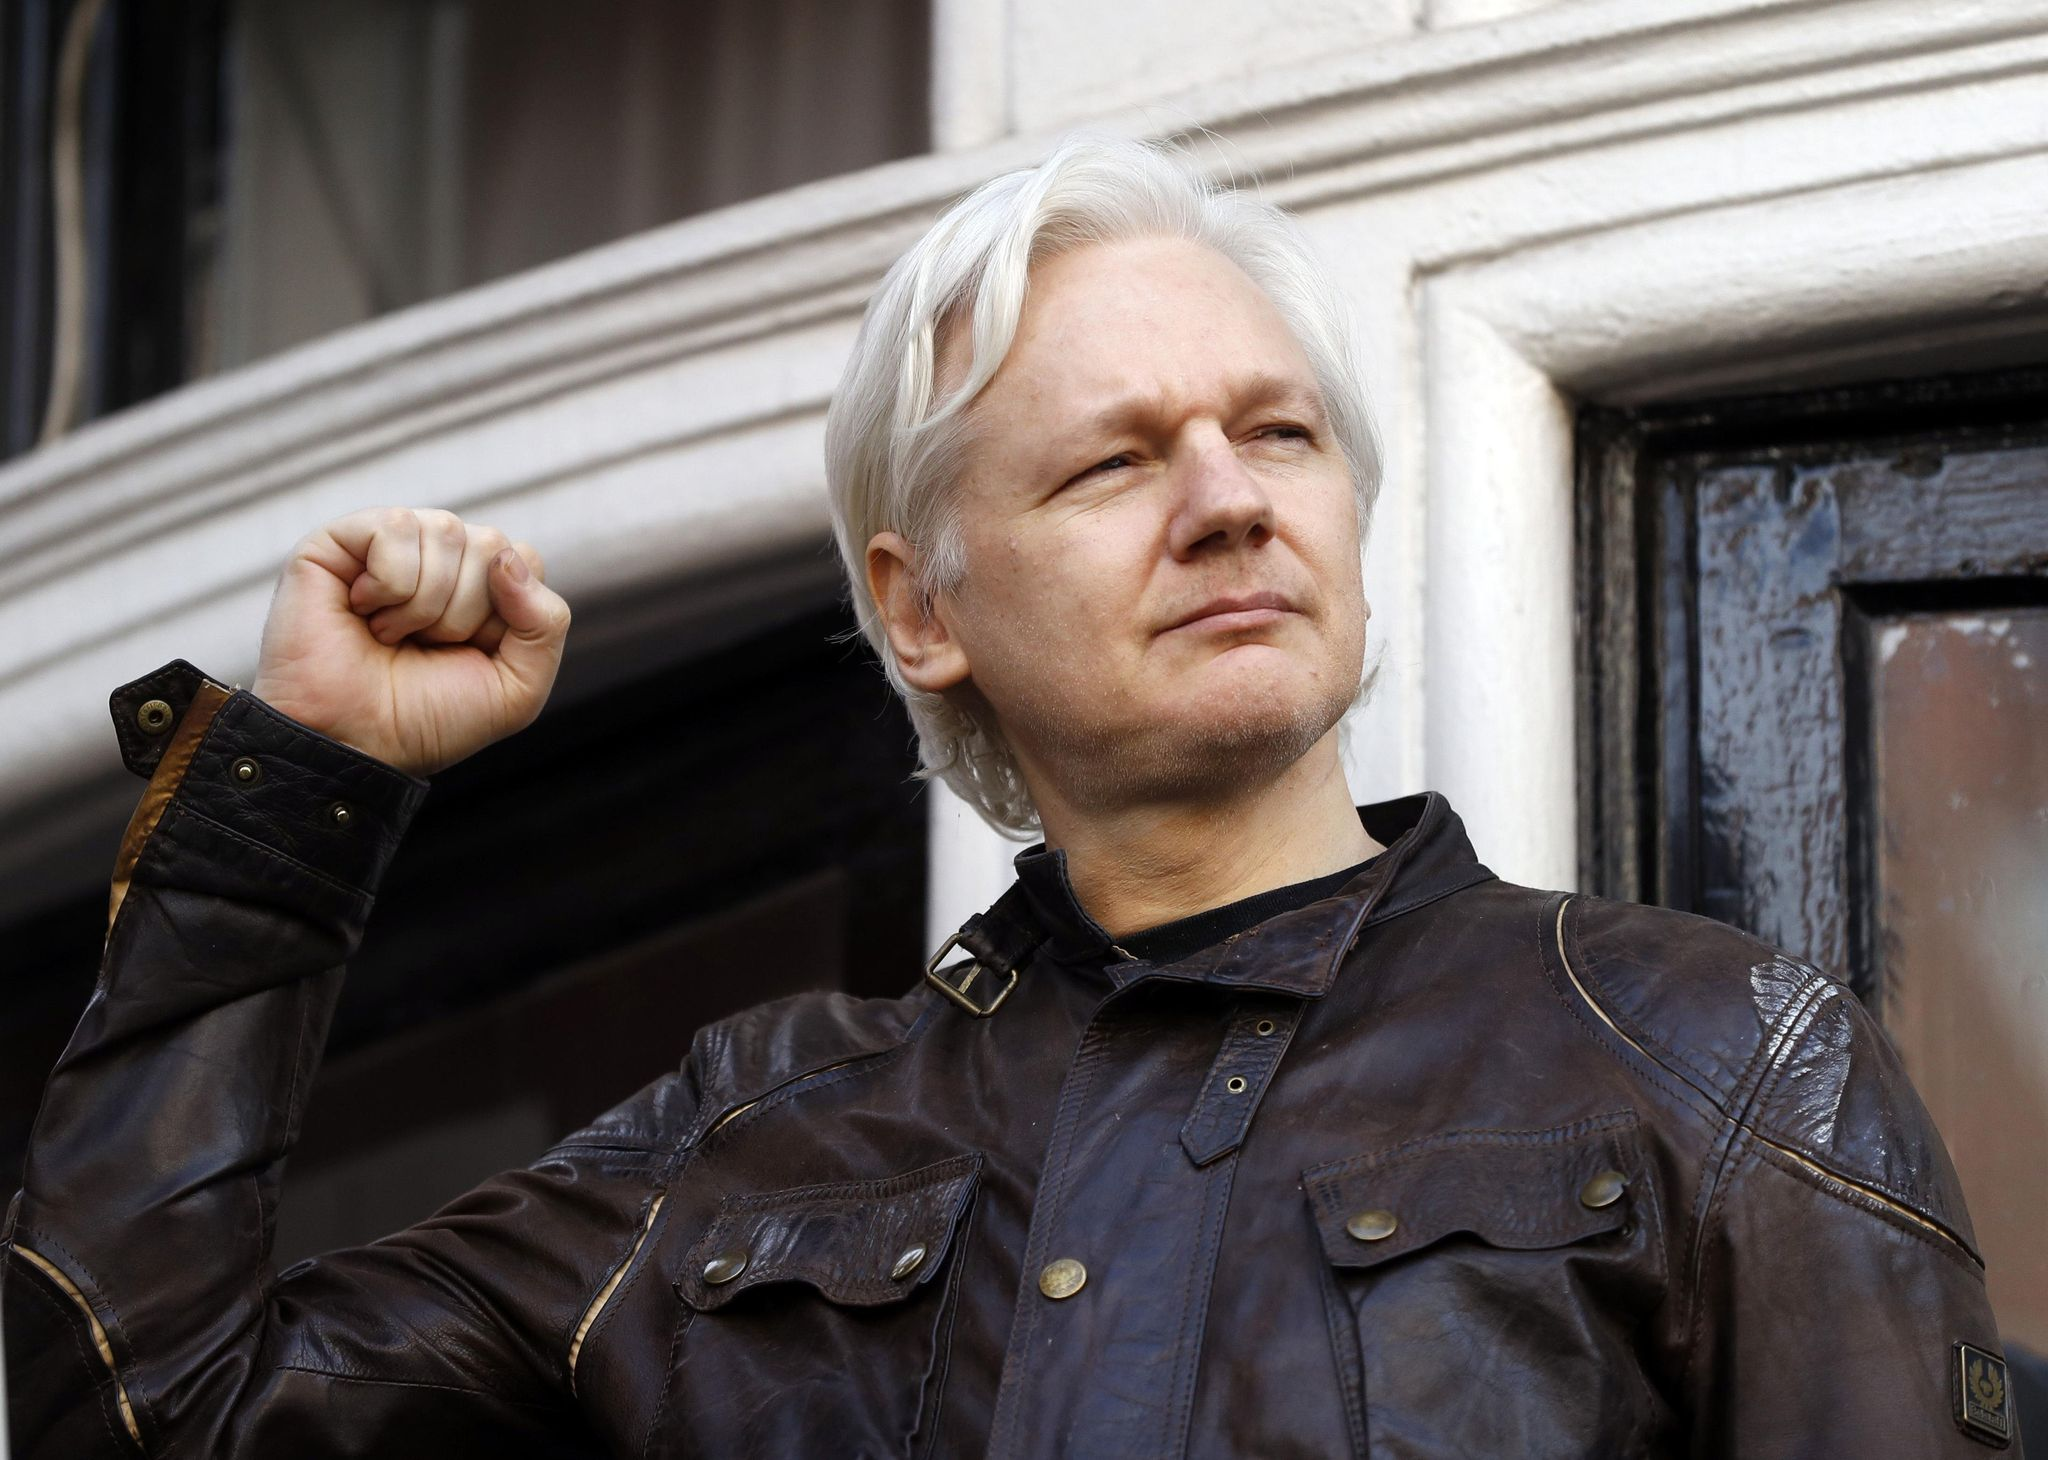 Federal prosecutor inadvertently reveals charges against WikiLeaks founder Assange